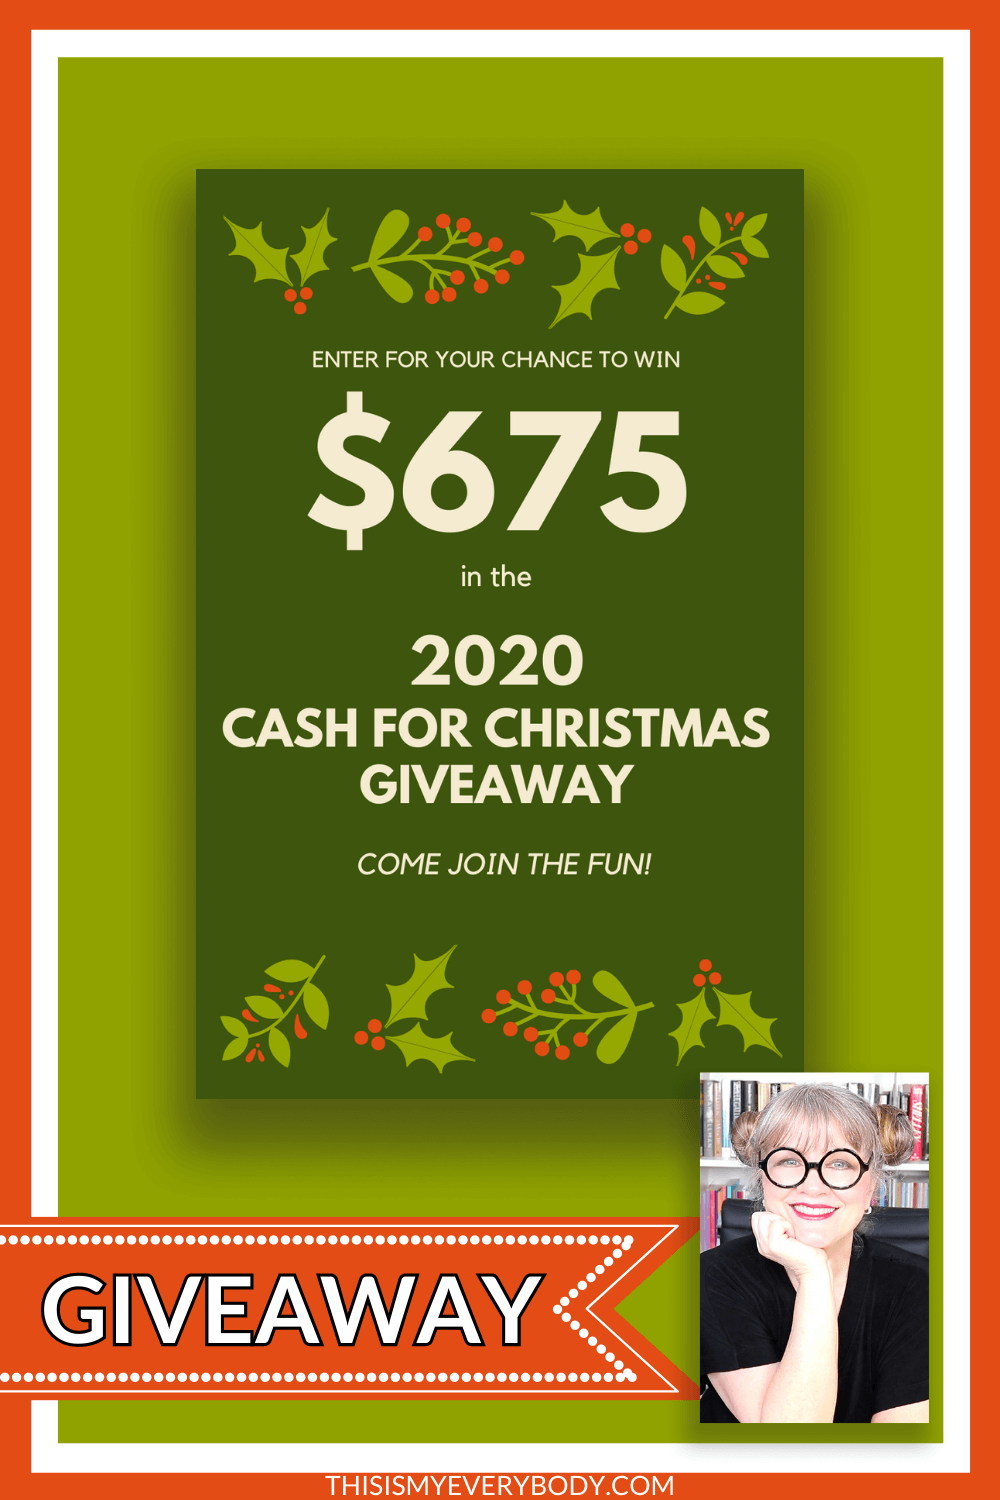 Ducks Christmas Giveway 2021 Christmas Giveaway 2020 Cash For Christmas This Is My Everybody Books Diy Home Ideas Denise Wilbanks